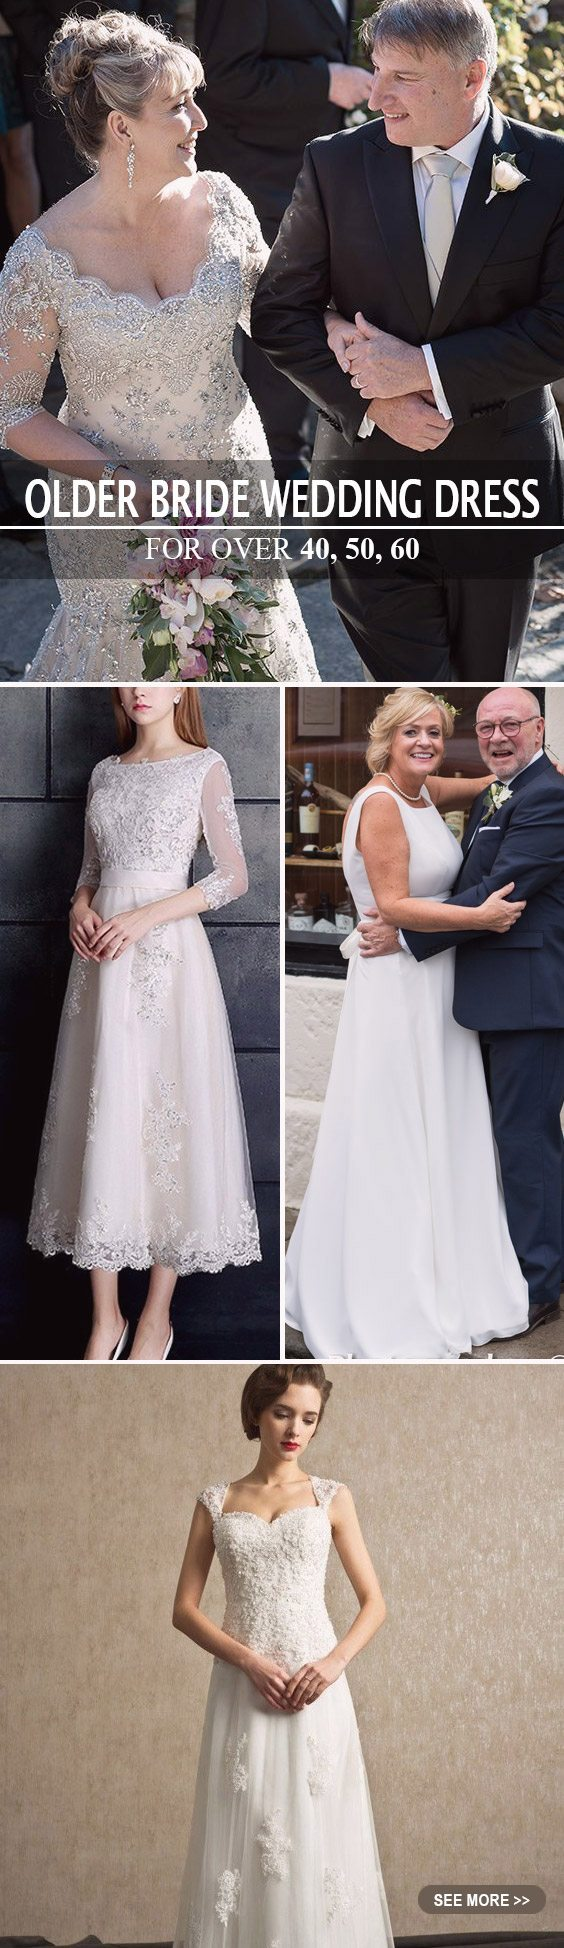 Beautiful wedding dresses for women over 50 images for Wedding dresses for 60 year olds